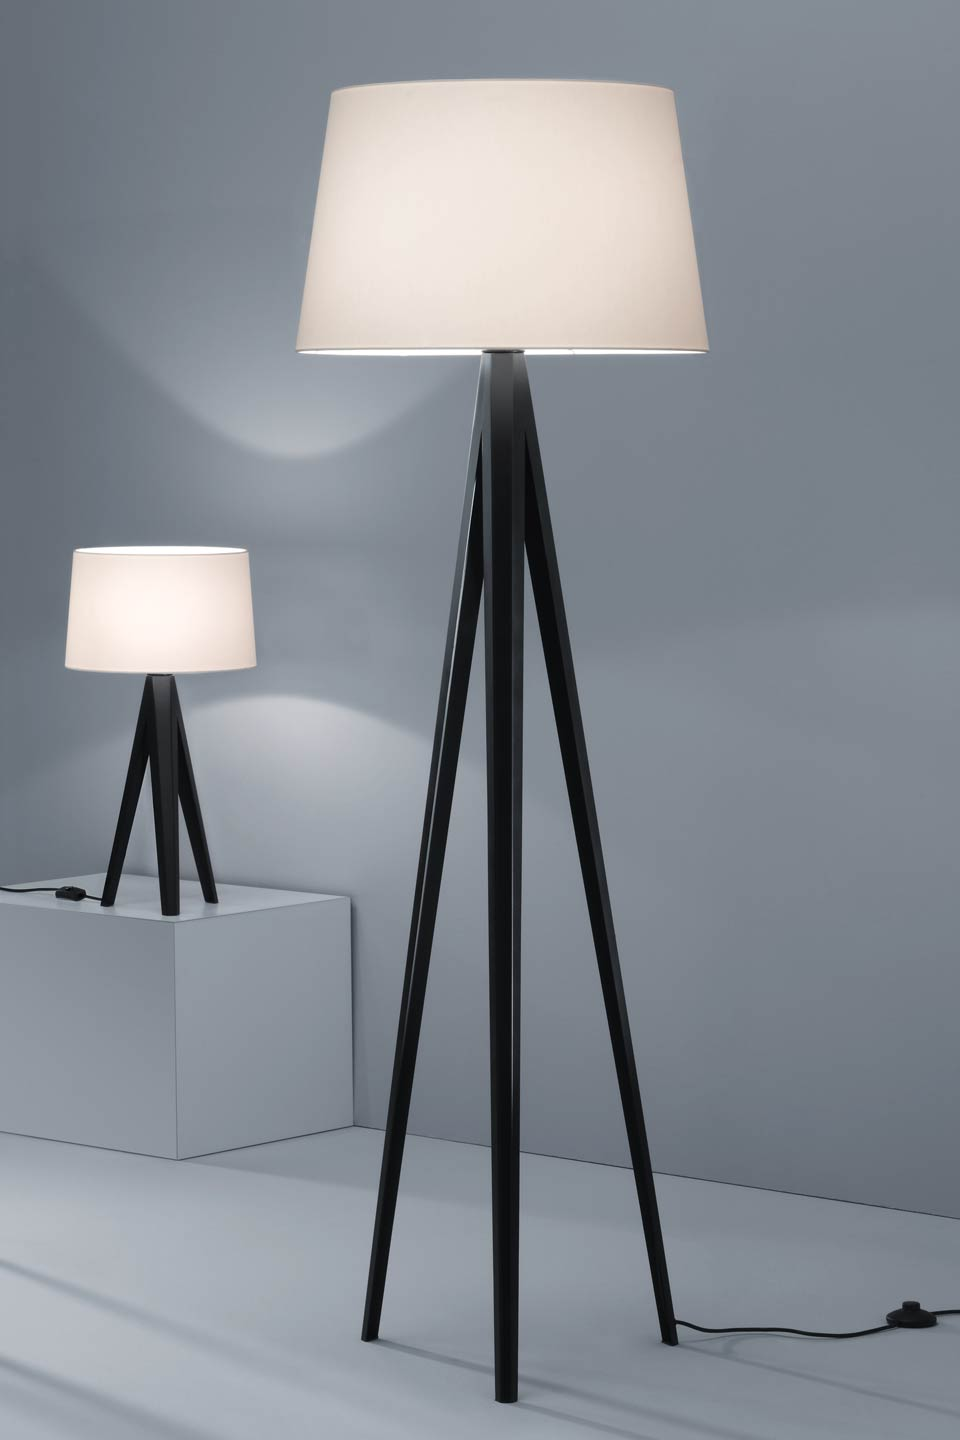 mon lampadaire lampadaire tr pied. Black Bedroom Furniture Sets. Home Design Ideas